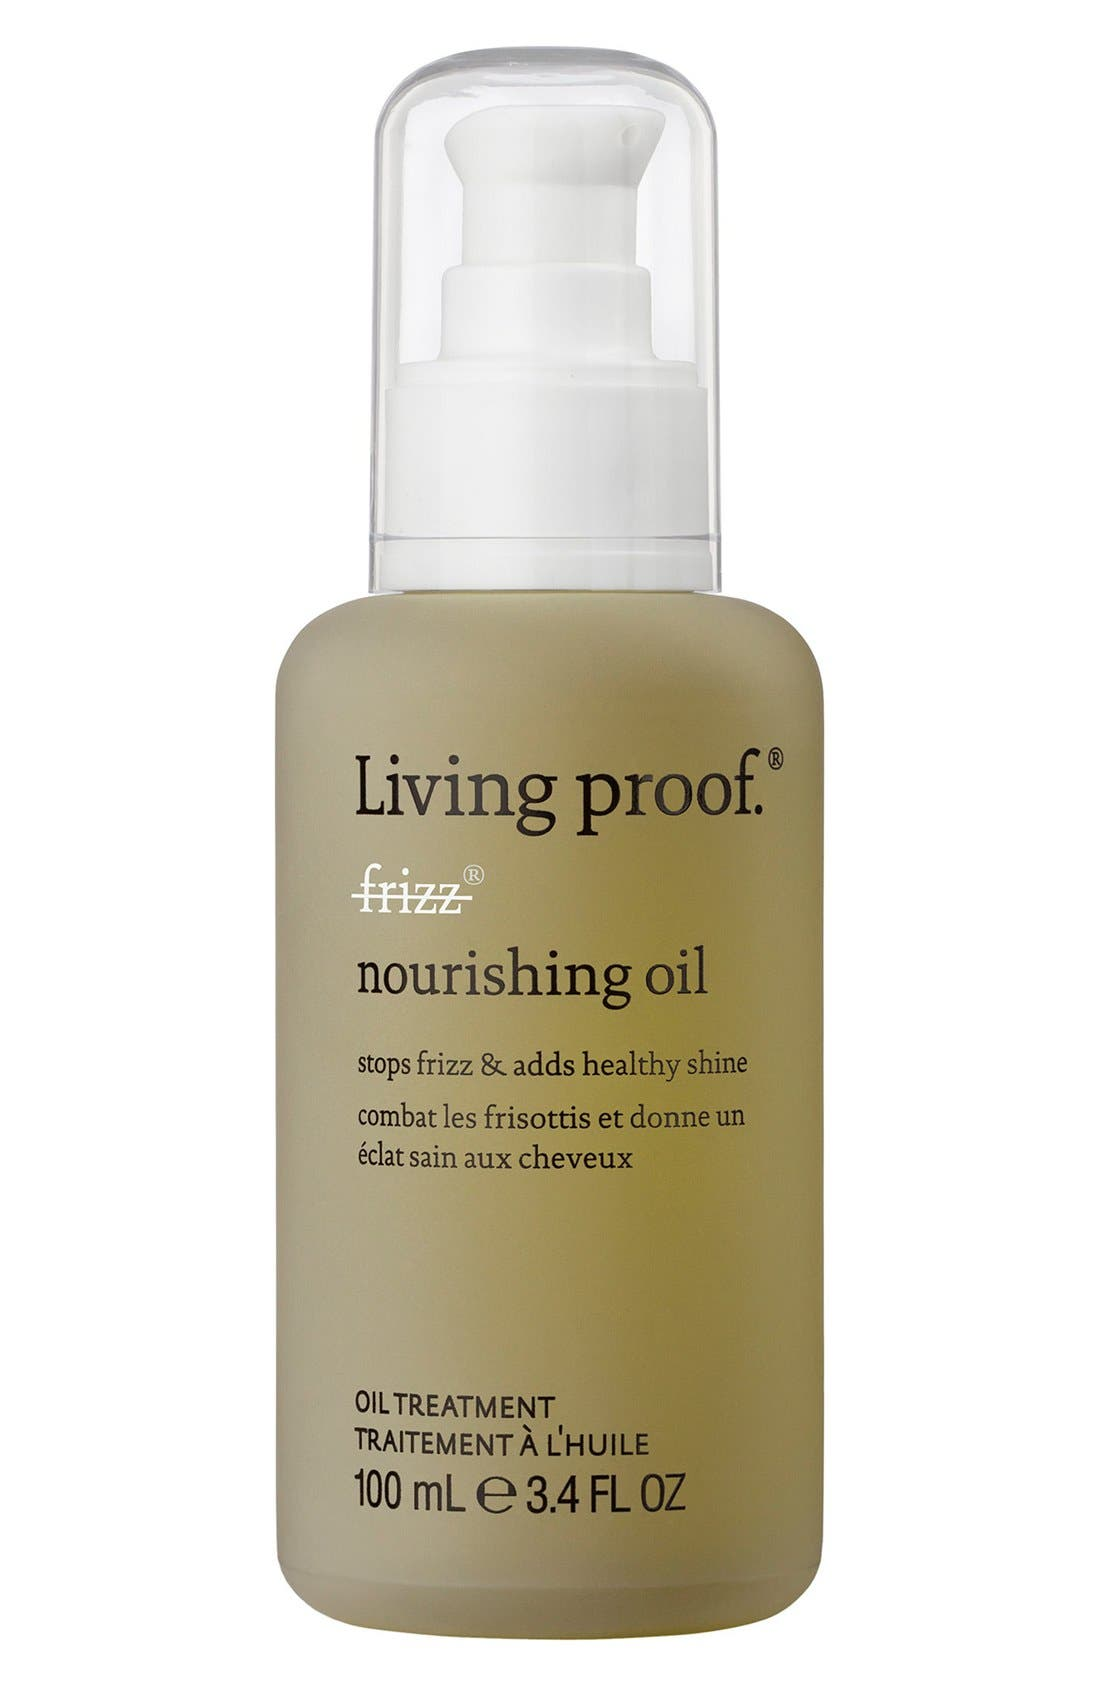 Living proof® No Frizz Nourishing Oil